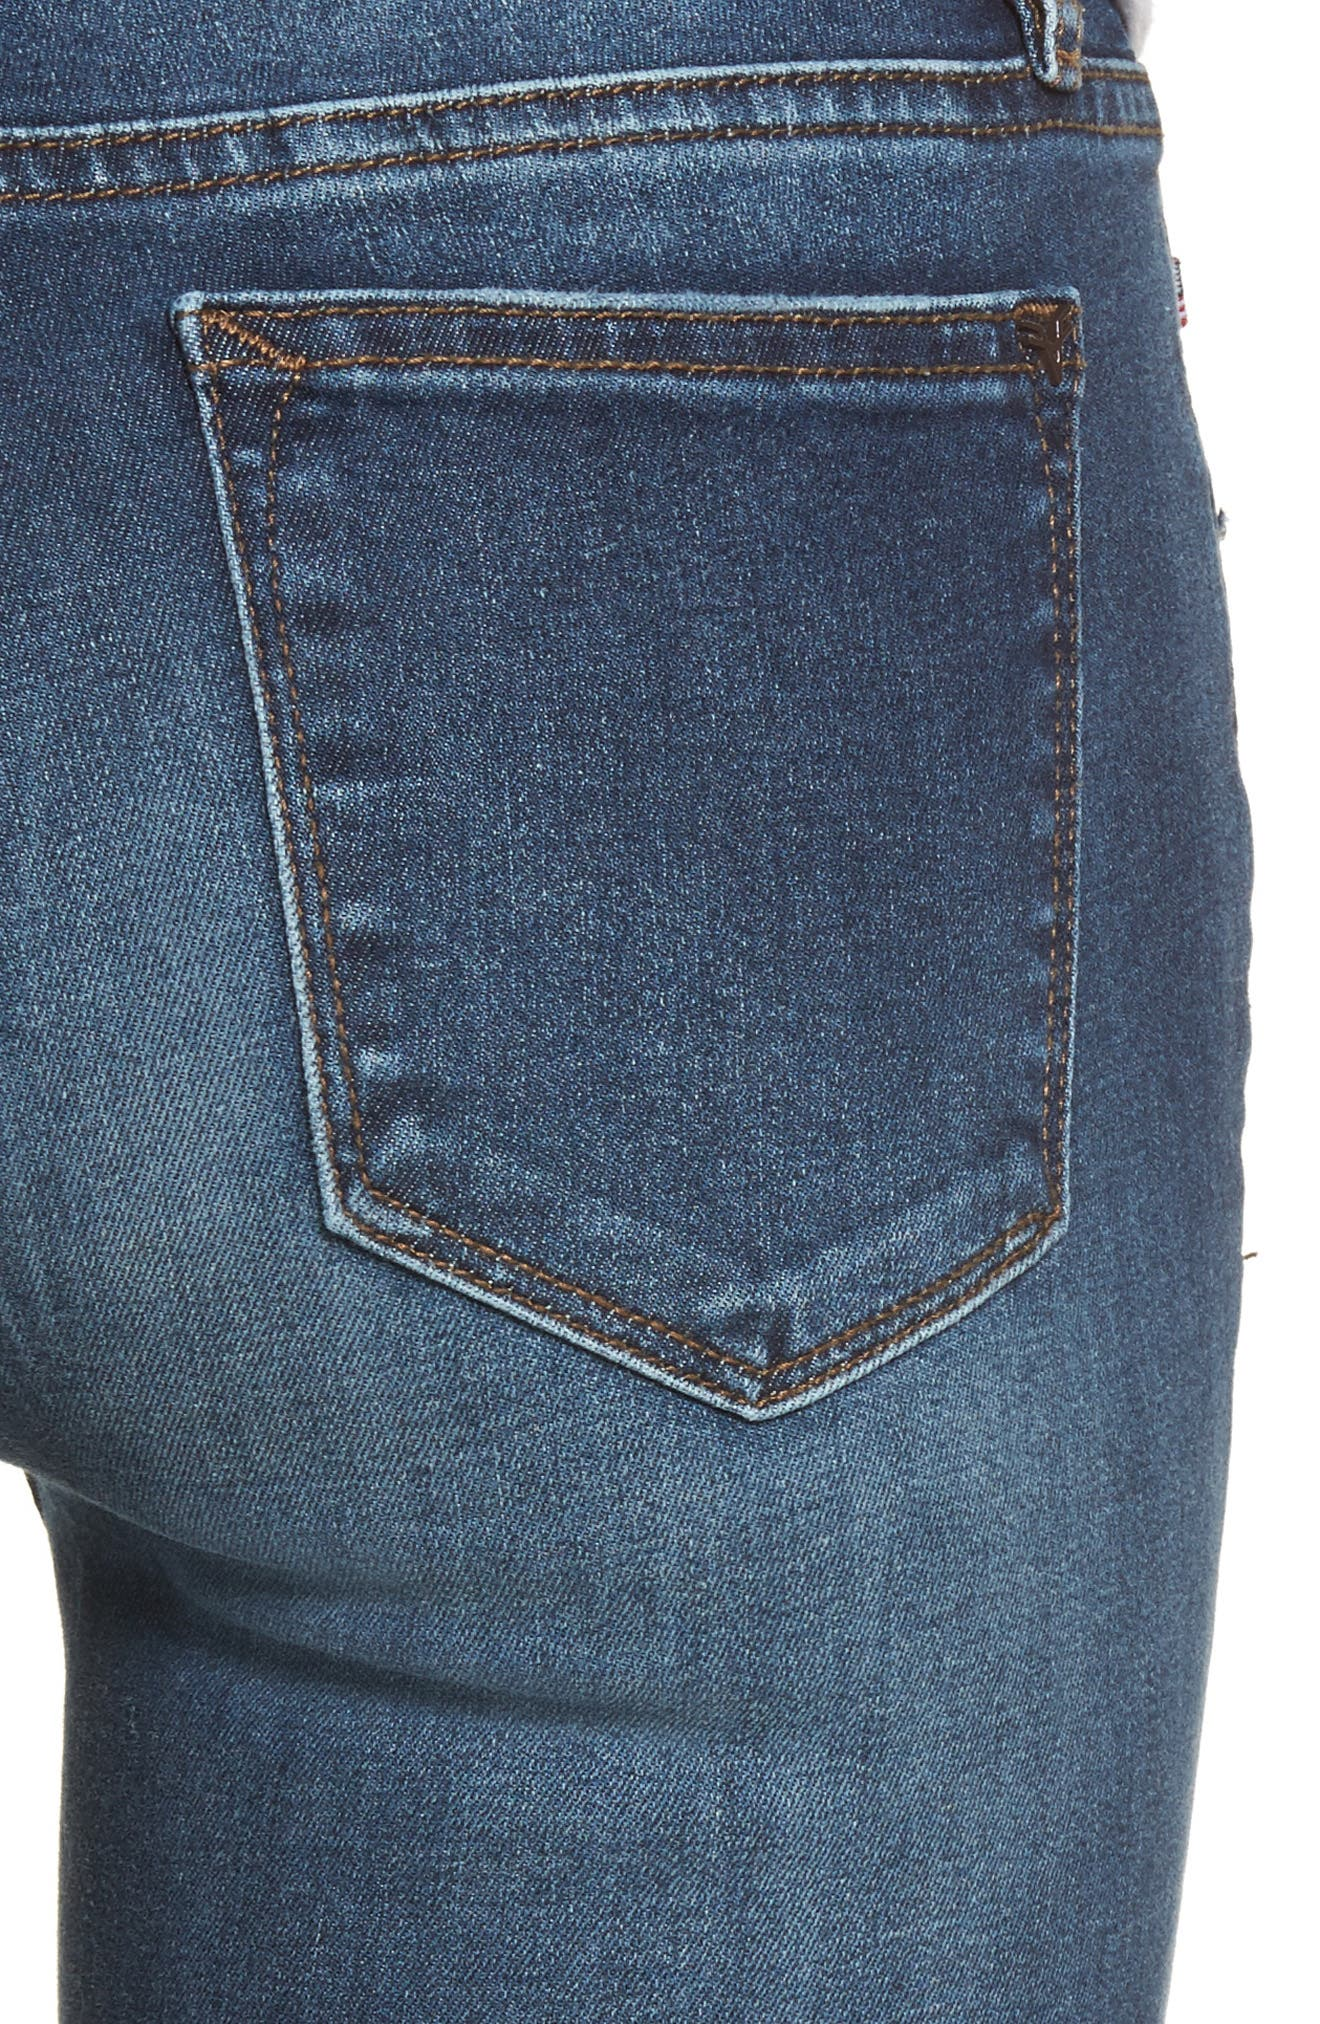 Jagger Distressed Skinny Jeans,                             Alternate thumbnail 4, color,                             403